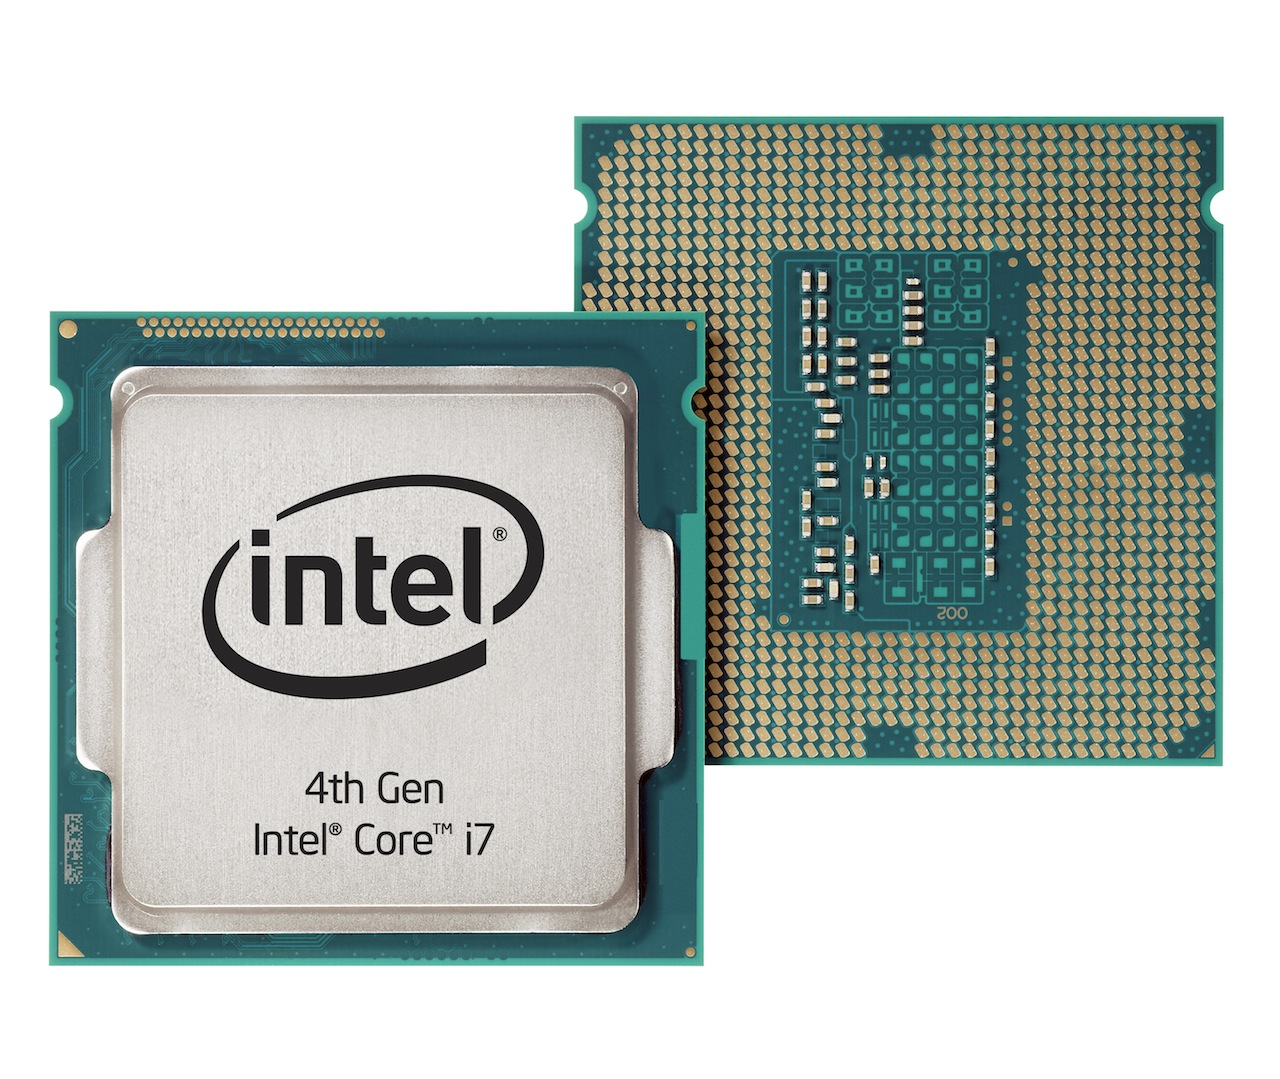 Intel has continued to survive and thrive despite the constantly shifting markets it competes in.